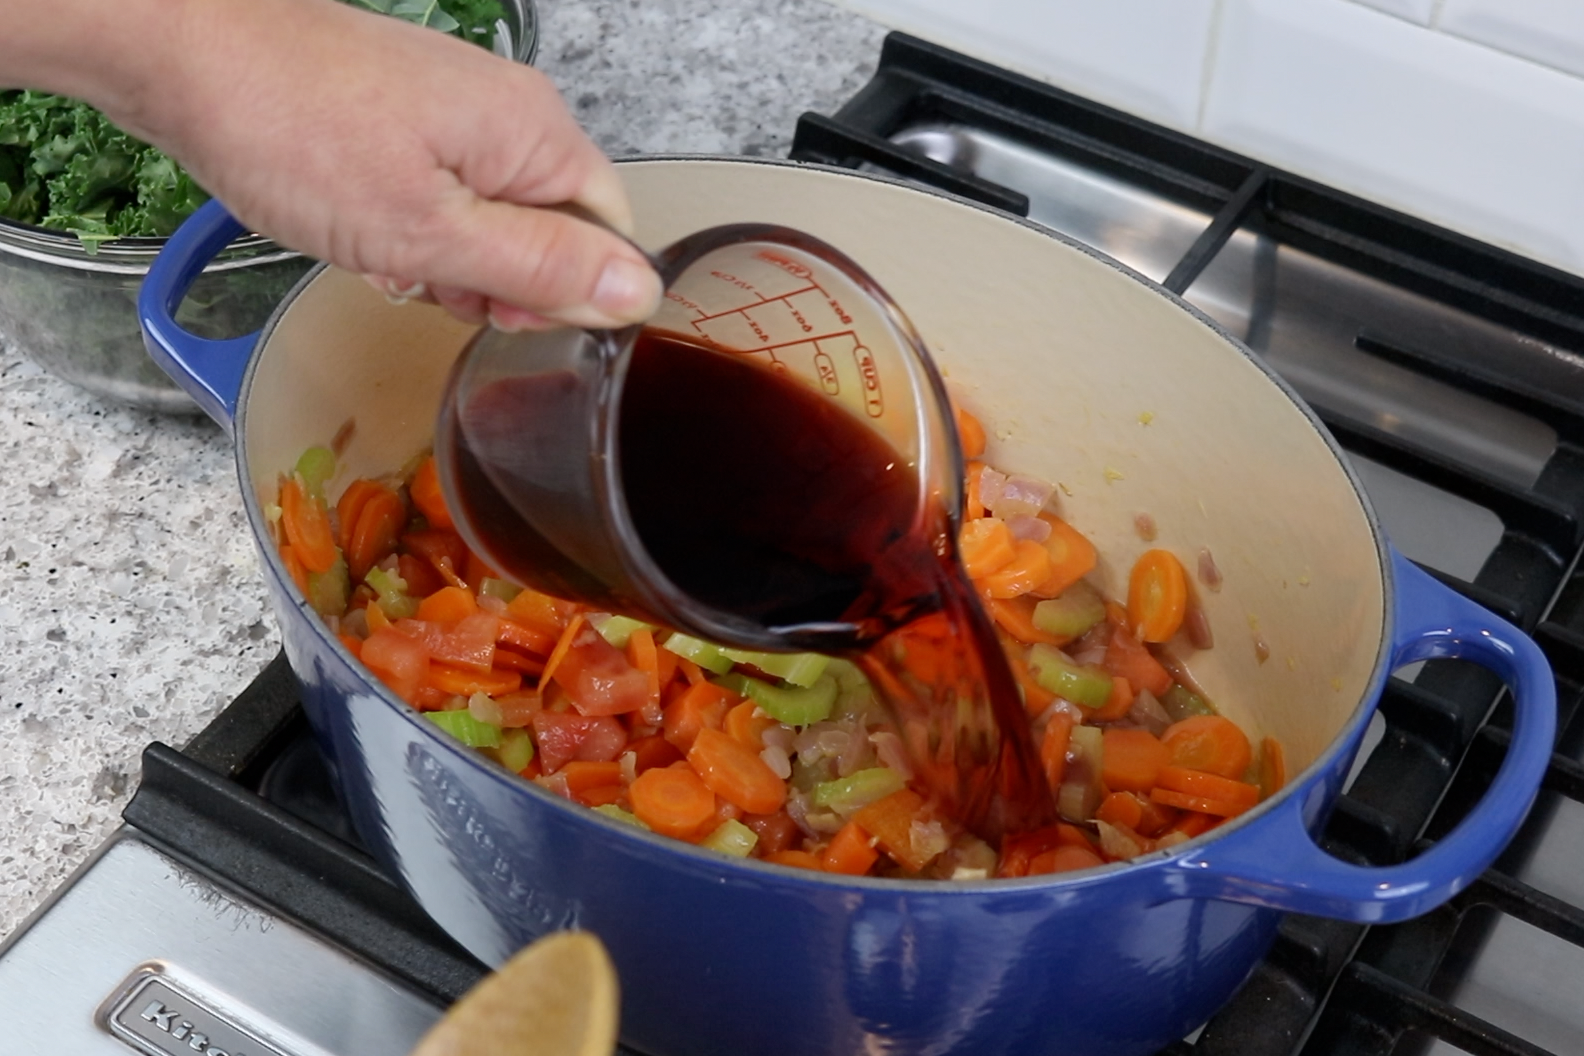 3. Stir in the garlic and cook for 3 minutes. Add the wine and tomato and bring to a boil. -